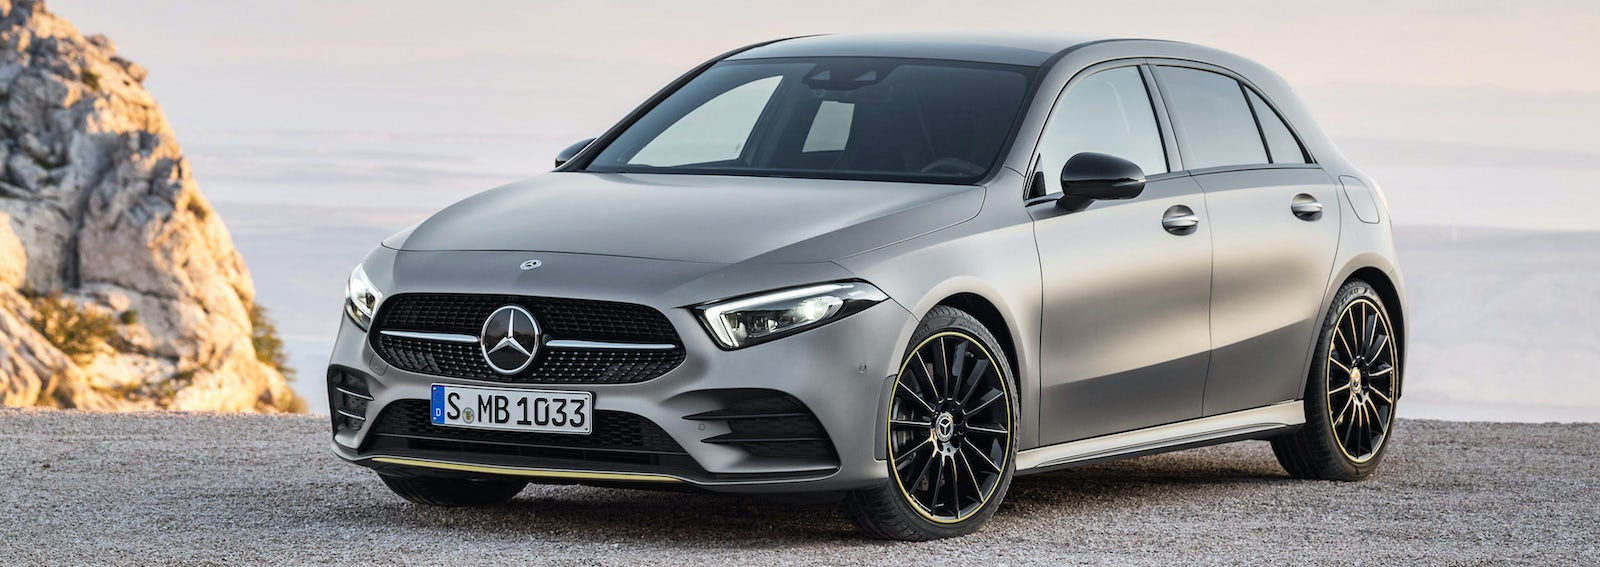 2018 mercedes a class price specs release date carwow. Black Bedroom Furniture Sets. Home Design Ideas